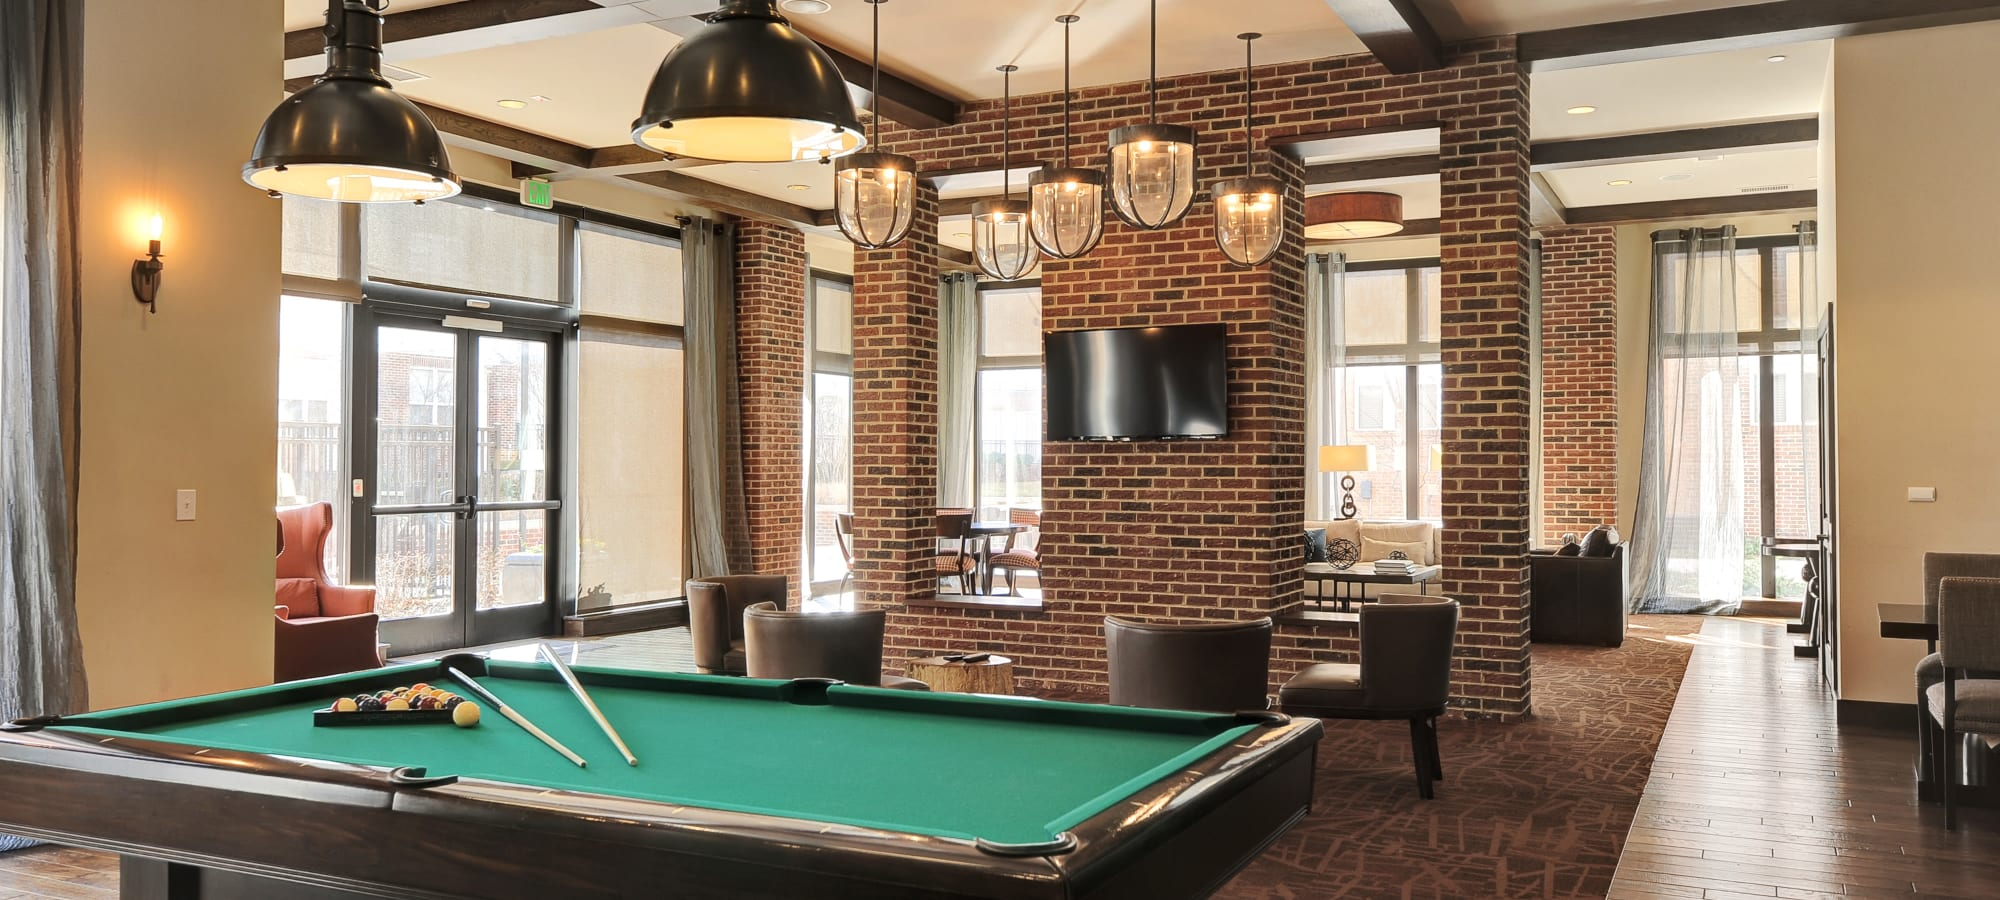 Pool table at The Mark at Brickyard Apartment Homes in Beltsville, Maryland.